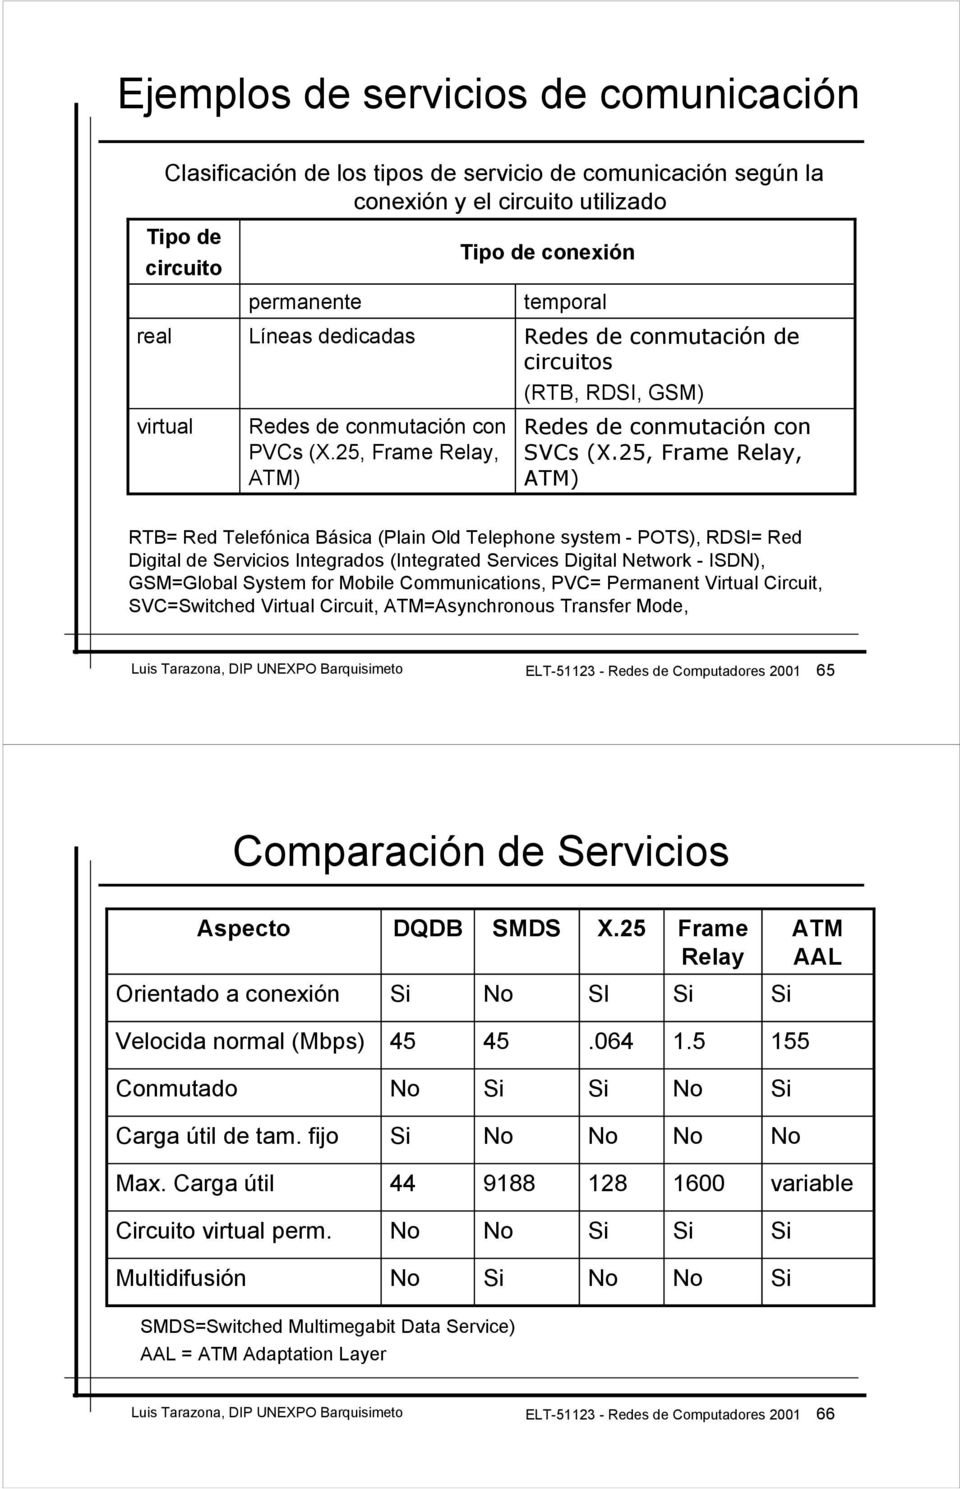 25, Frame Relay, ATM) RTB= Red Telefónica Básica (Plain Old Telephone system - POTS), RDSI= Red Digital de Servicios Integrados (Integrated Services Digital Network - ISDN), GSM=Global System for